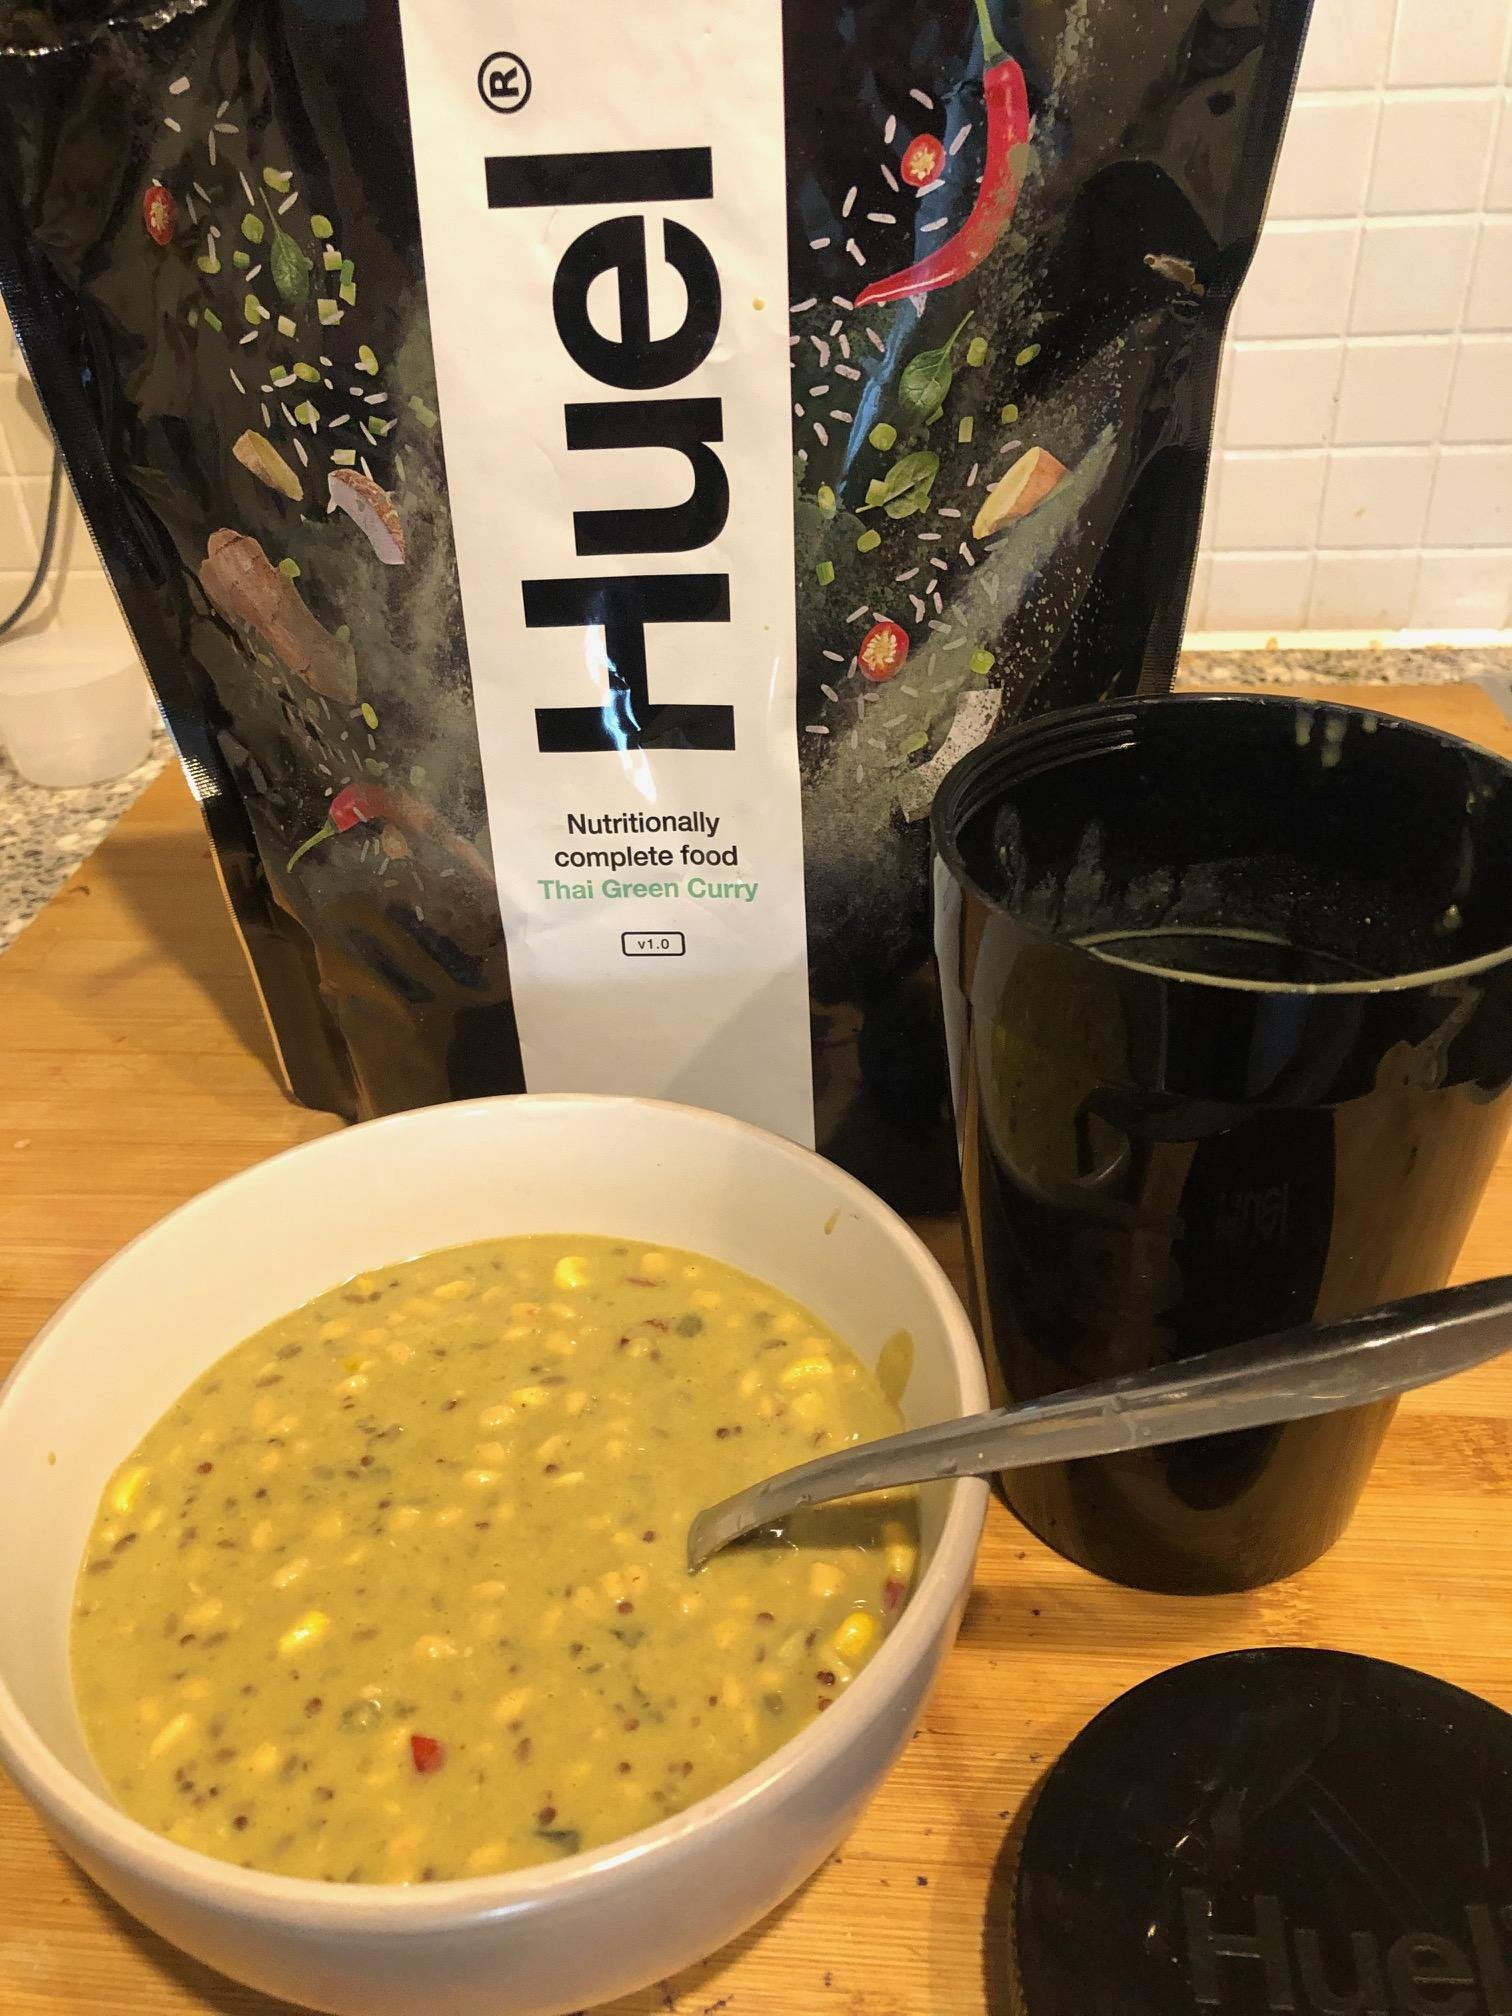 Huel Launch Event + New Product Pics + Initial Taste Impressions : Huel